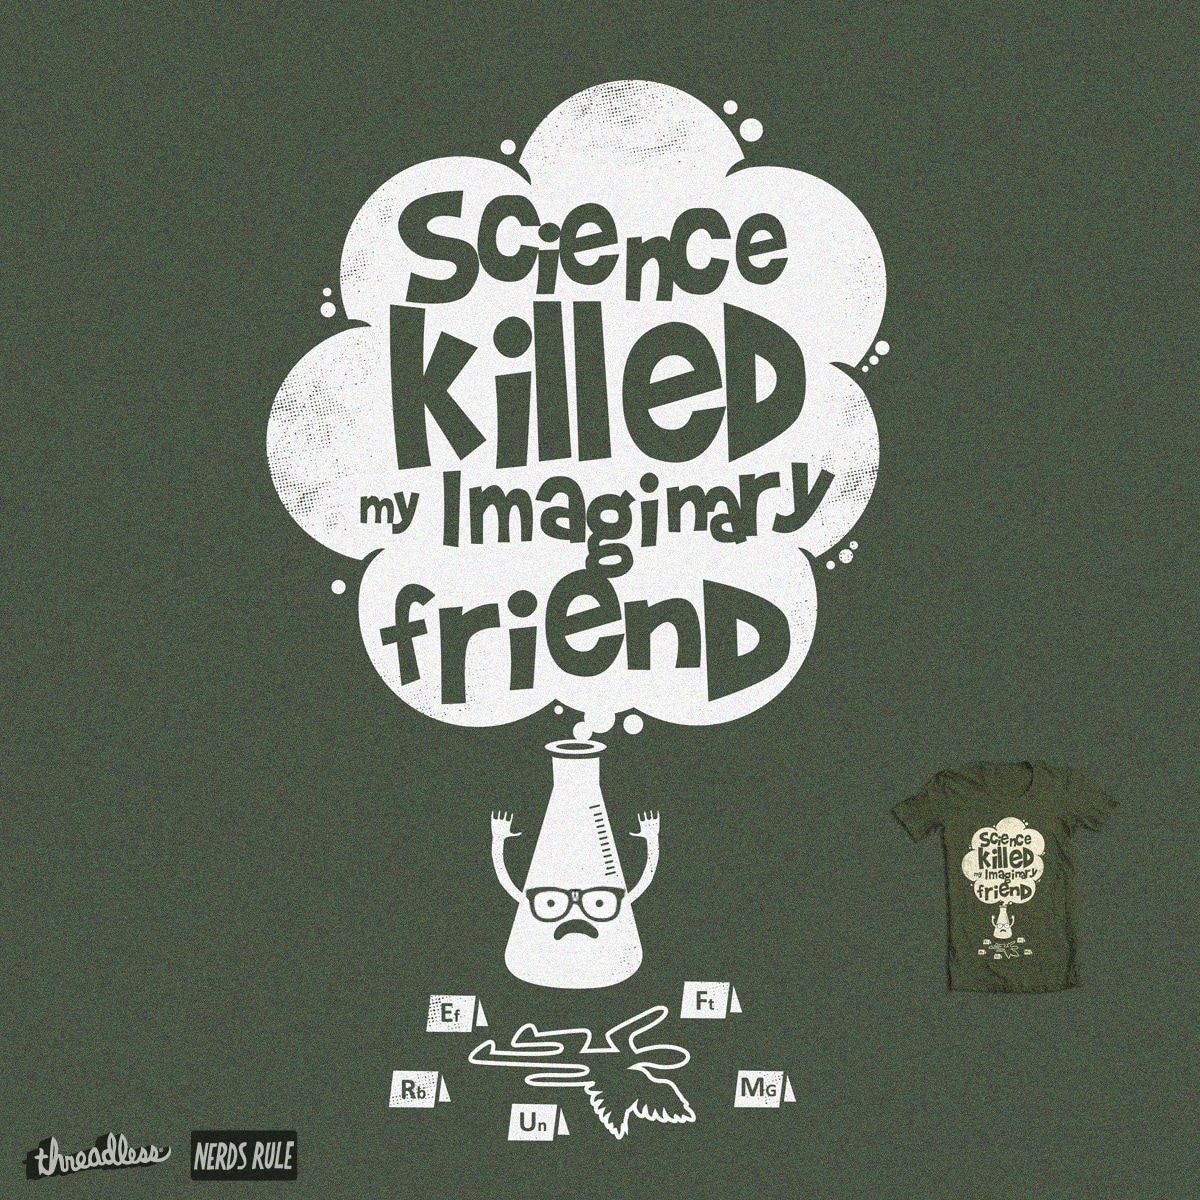 Science Killed my Imaginary Friend (Imaginary Element Version)  by Skate_e1 and krokun on Threadless